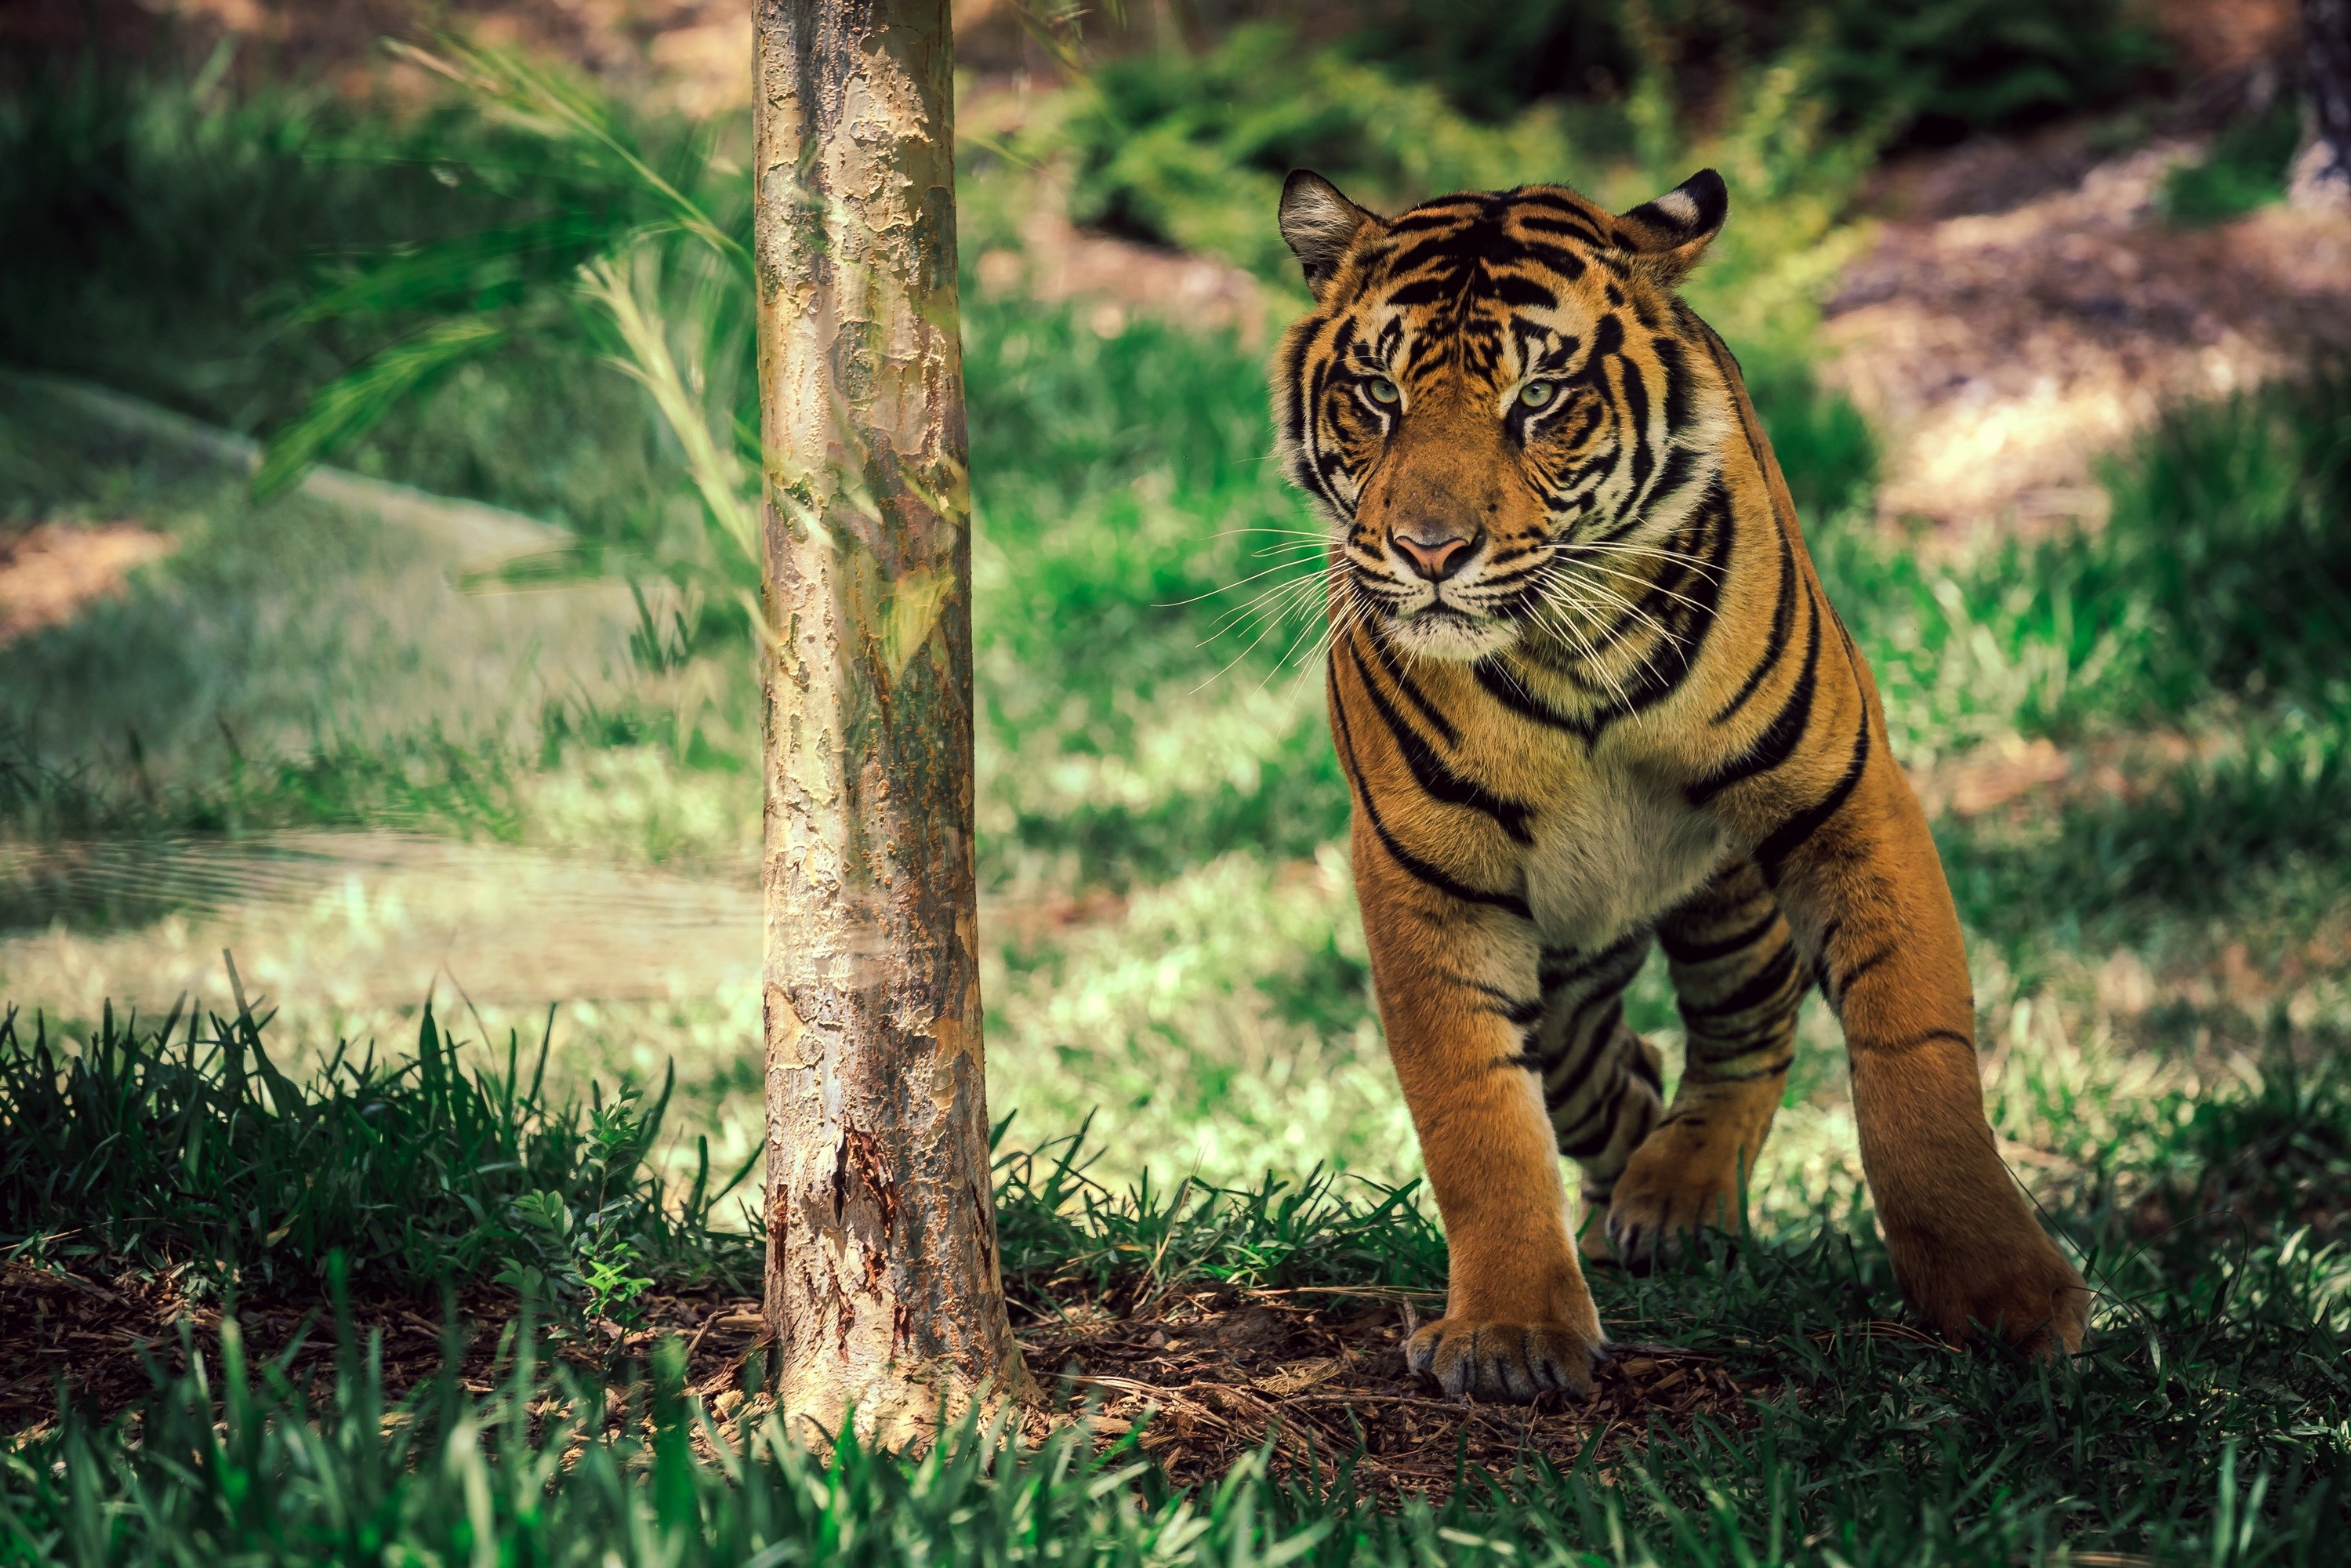 Tiger Savanna Cute Animals 4522